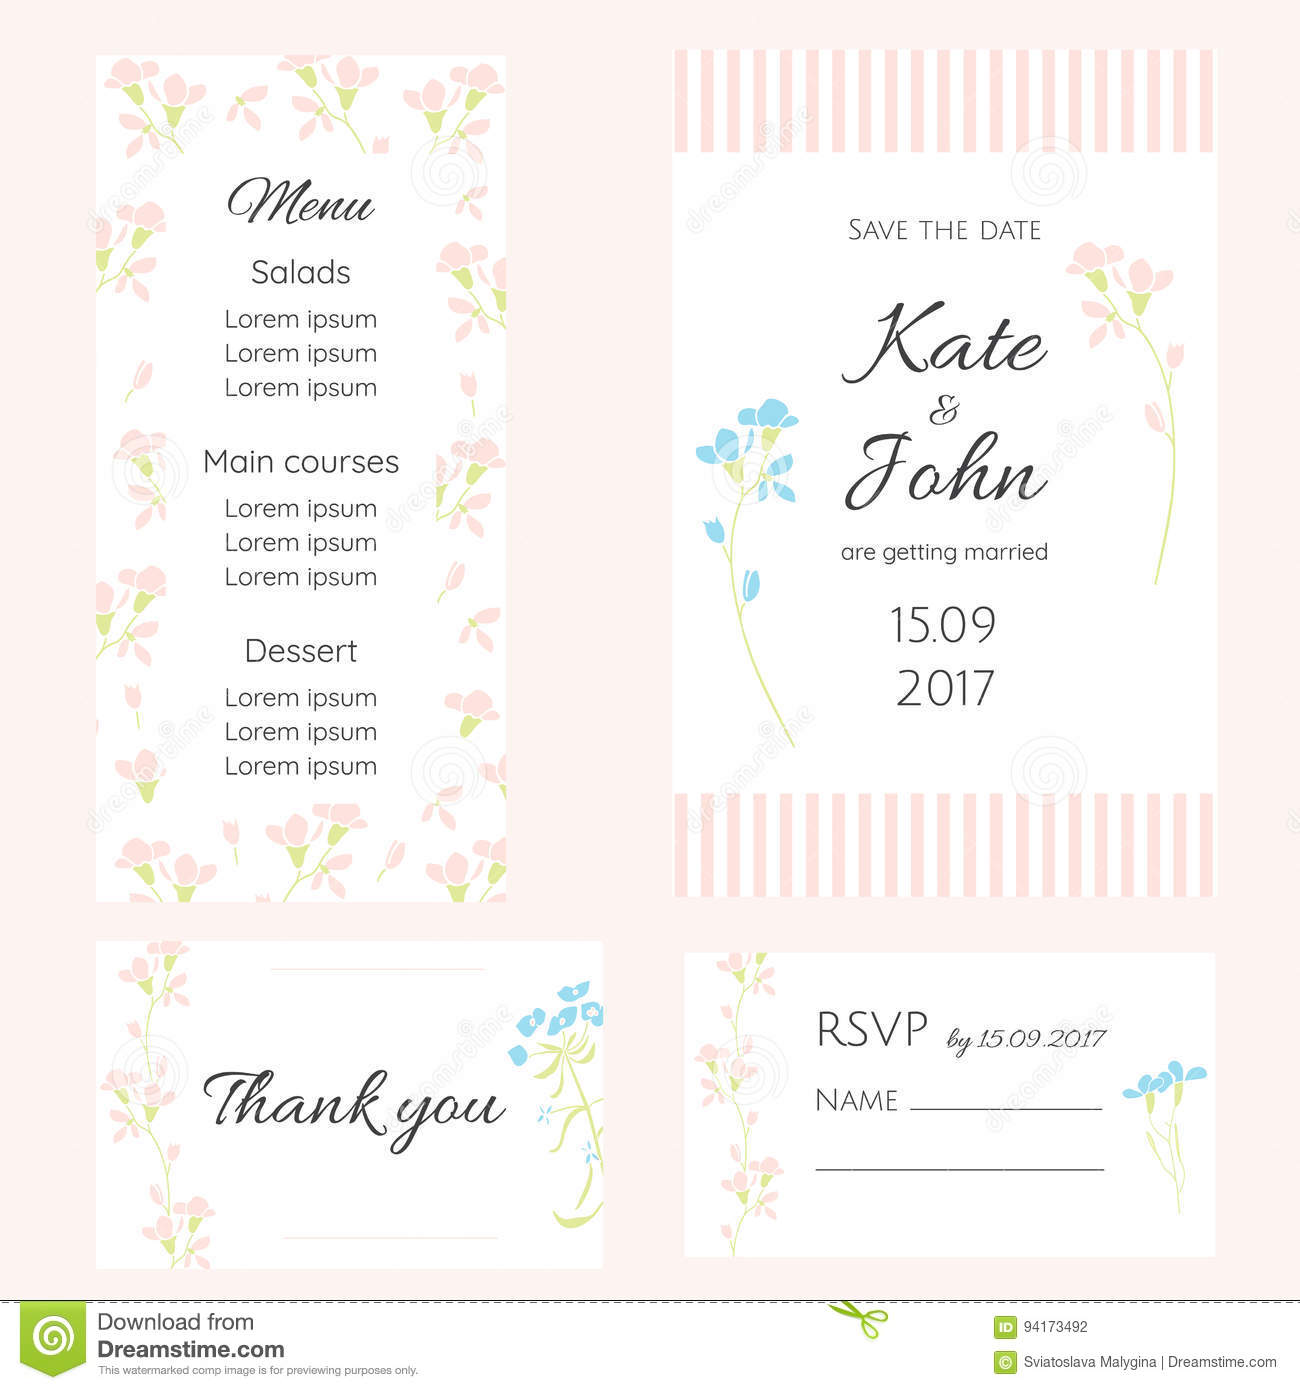 A set of gentle cards for the wedding